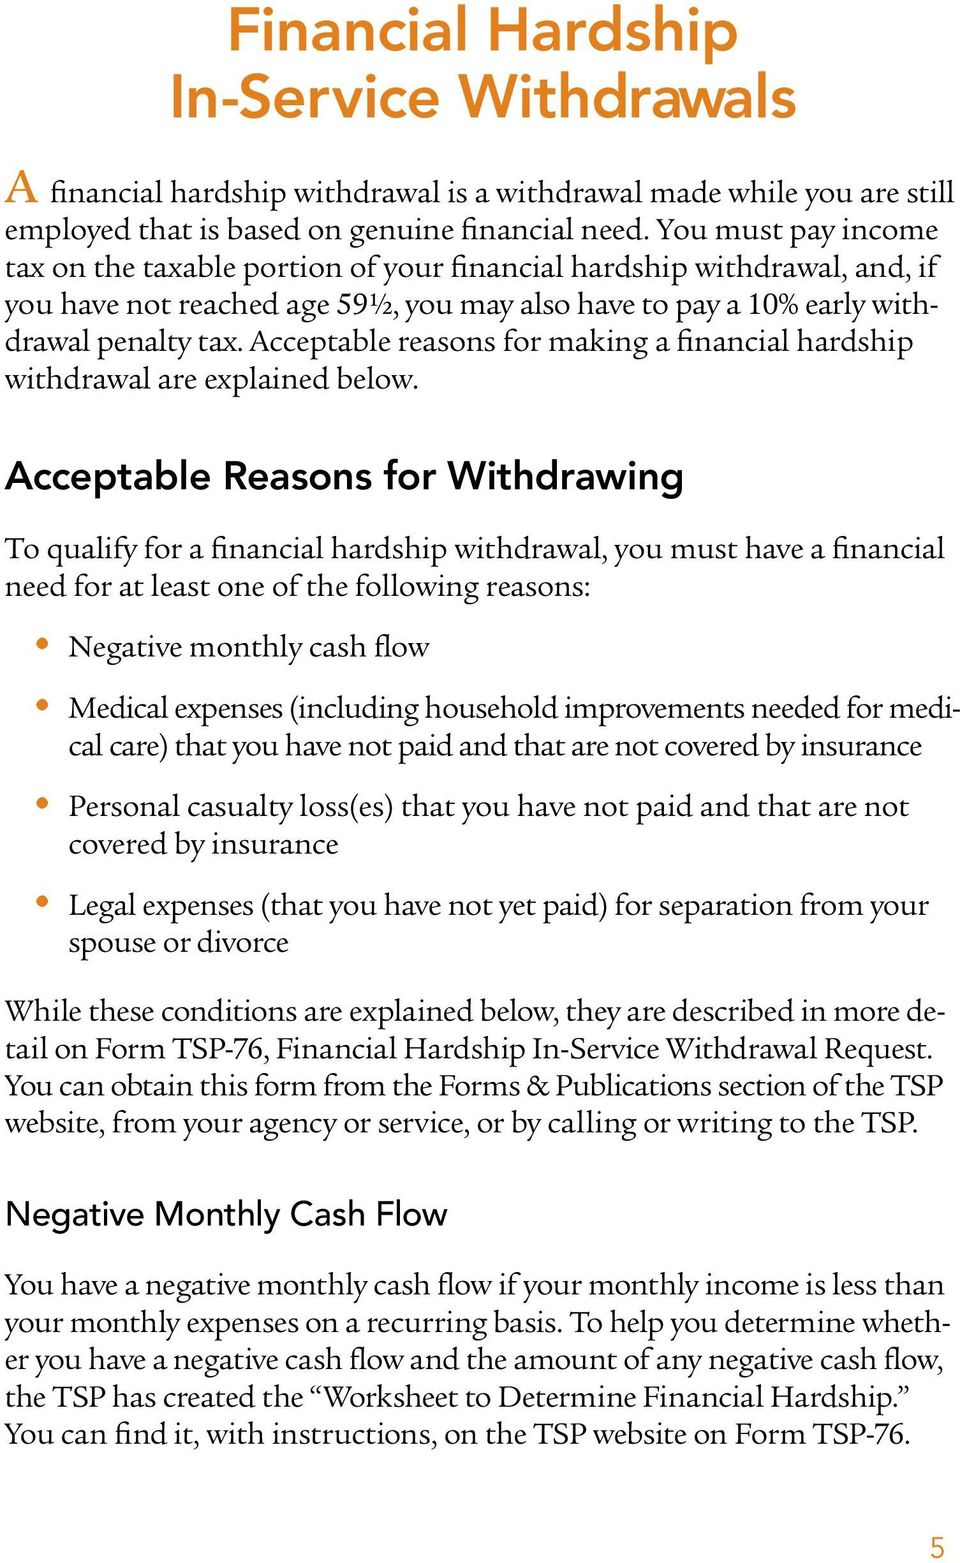 Acceptable reasons for making a financial hardship withdrawal are explained below.